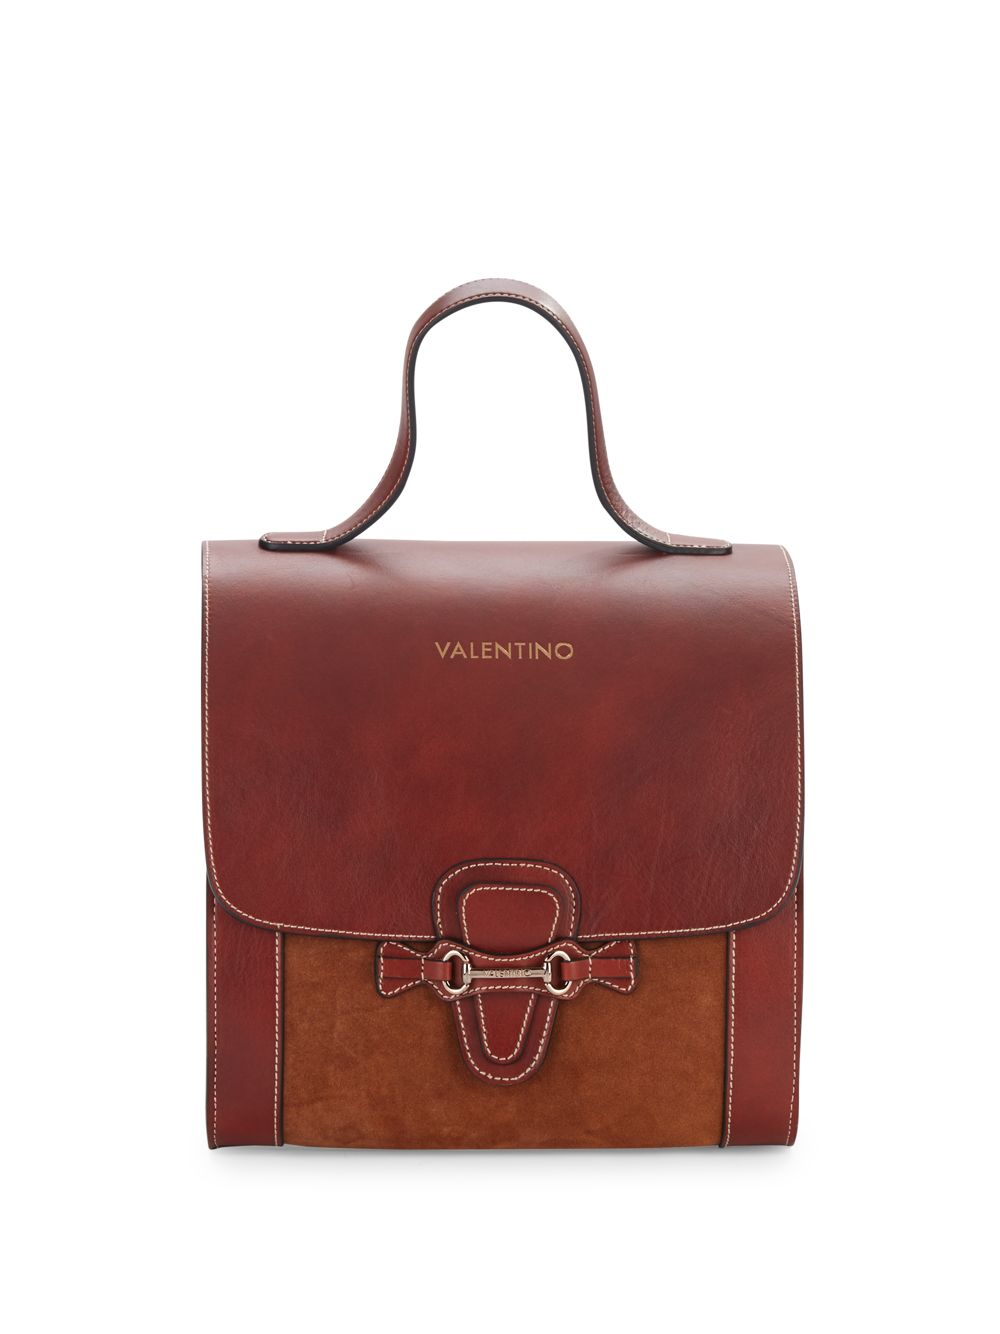 valentino by mario valentino amy top handle leather bag in. Black Bedroom Furniture Sets. Home Design Ideas